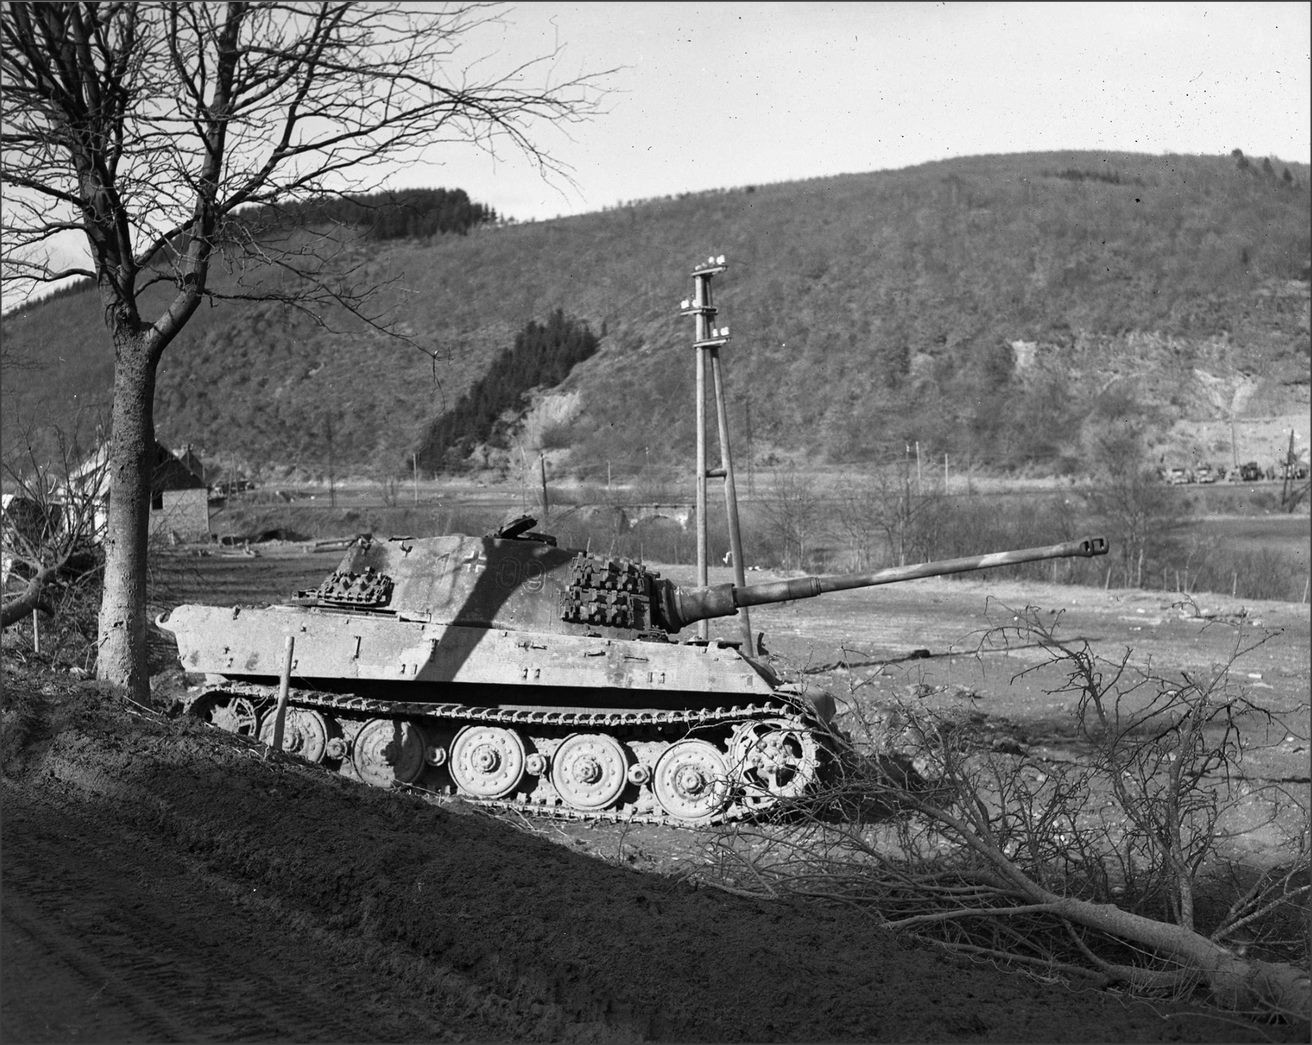 KT 109 of the 506th heavy tank battalion abandoned in January 1945 south of St. Vith Ardennes